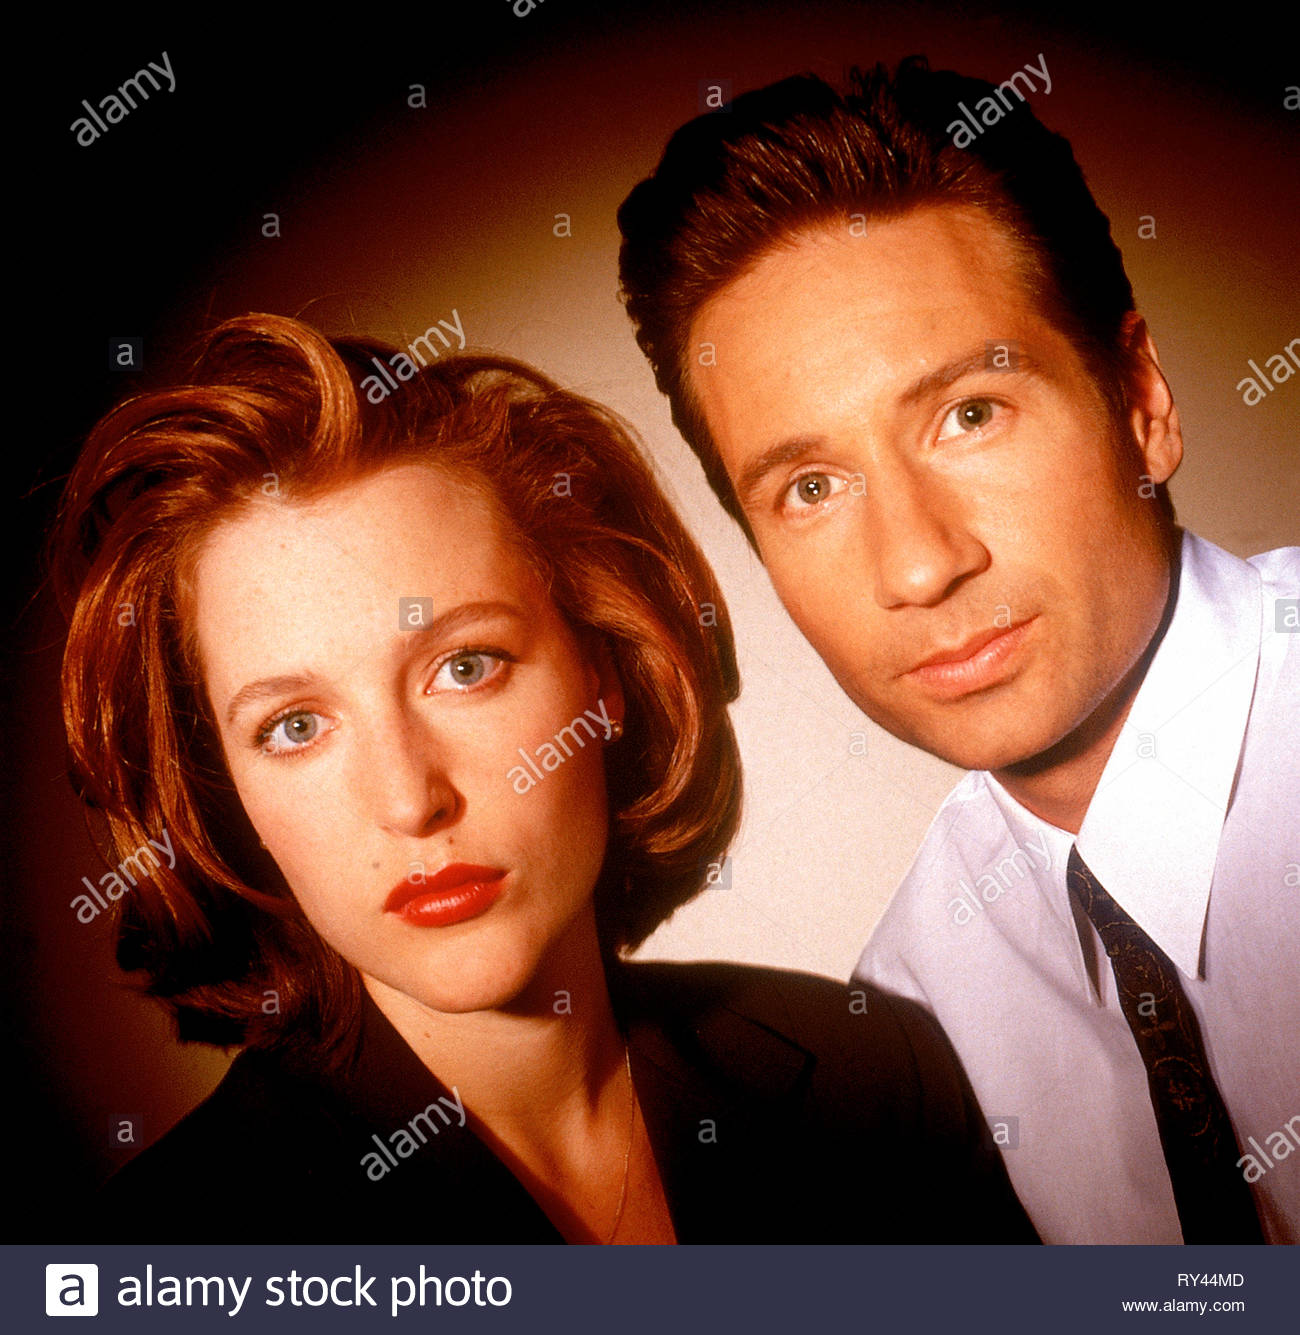 ANDERSON,DUCHOVNY, THE X FILES, 1993 - Stock Image